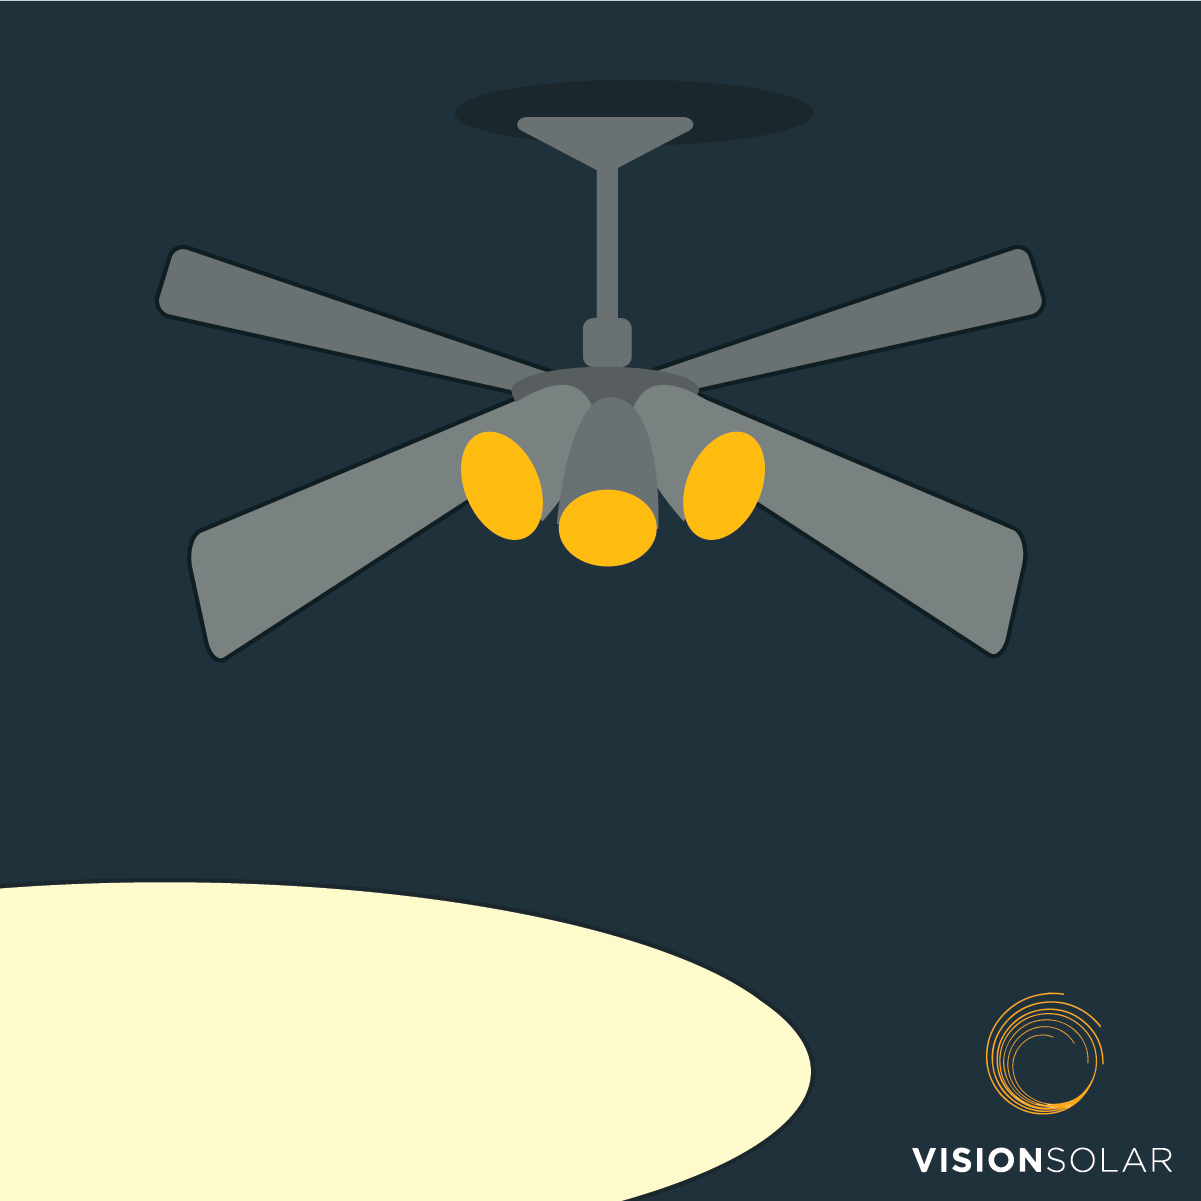 Vision Solar : How Much Power Does My Ceiling Fan Use